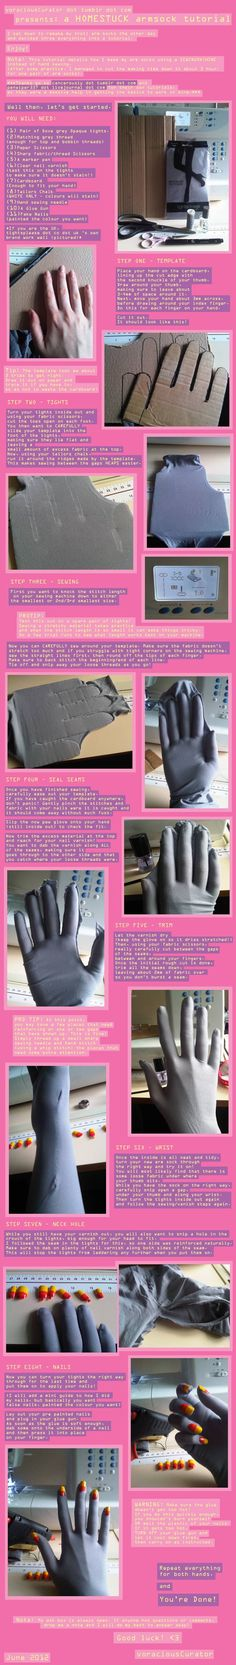 How to make an armsock for cosplay on a sewing machine. Saw this from an Weeping Angel cosplayer a couple years ago. Looks great.